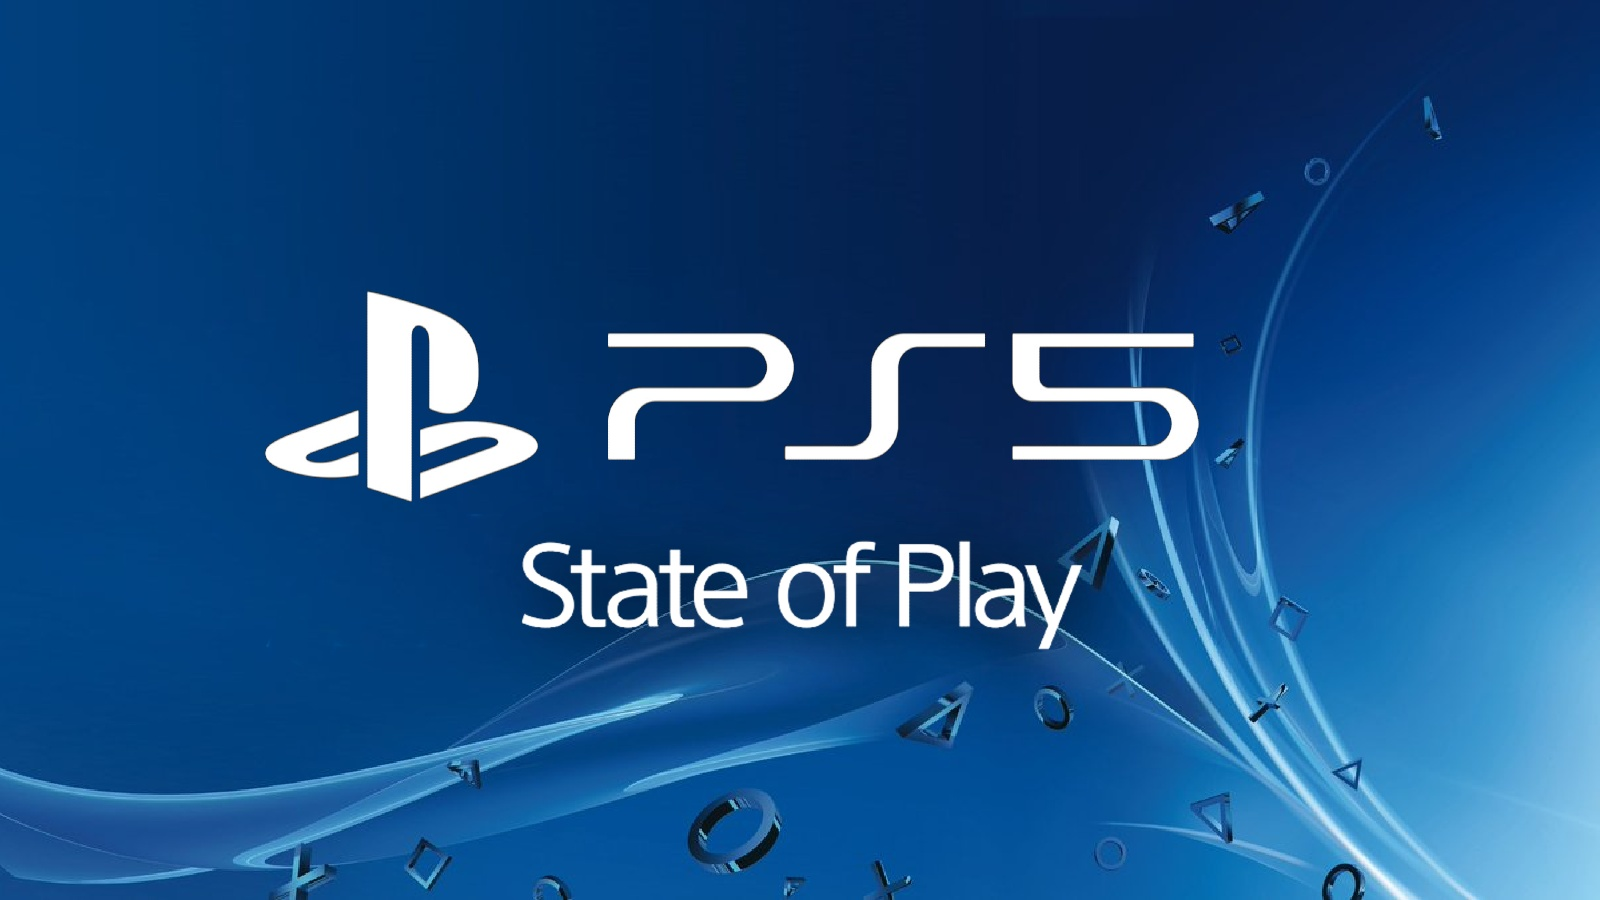 PS5 rumored State of Play event